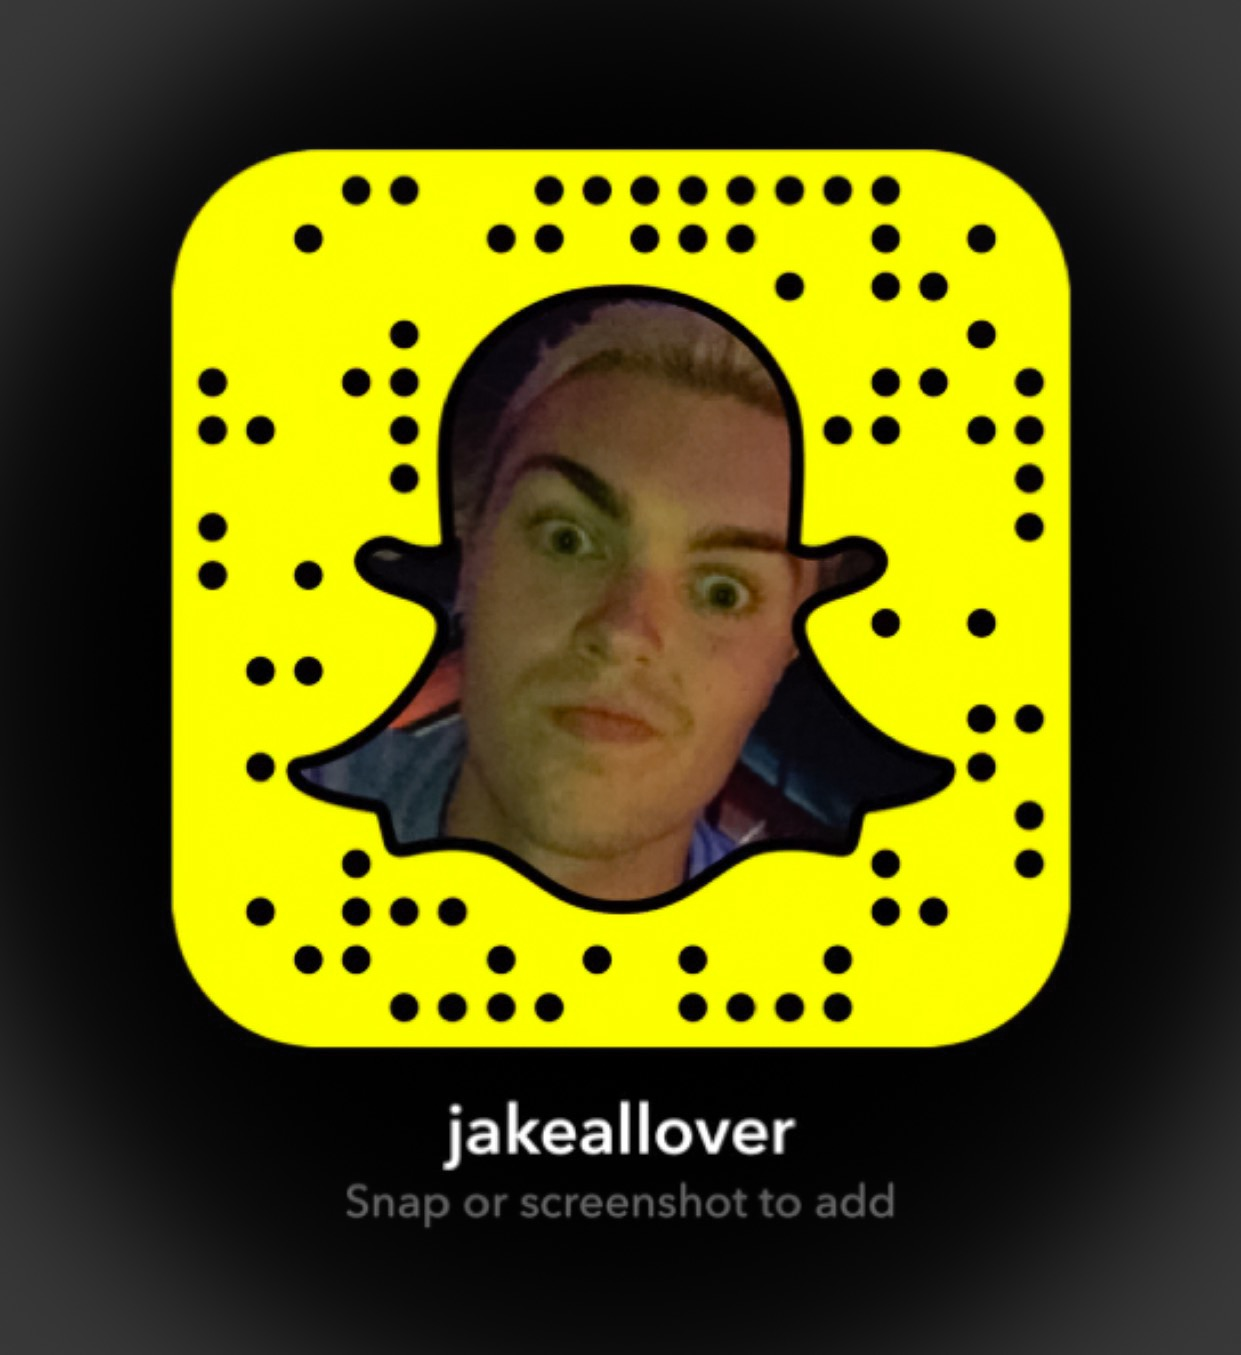 Want to know where I'm headed? Add me on Snapchat at jakeallover!